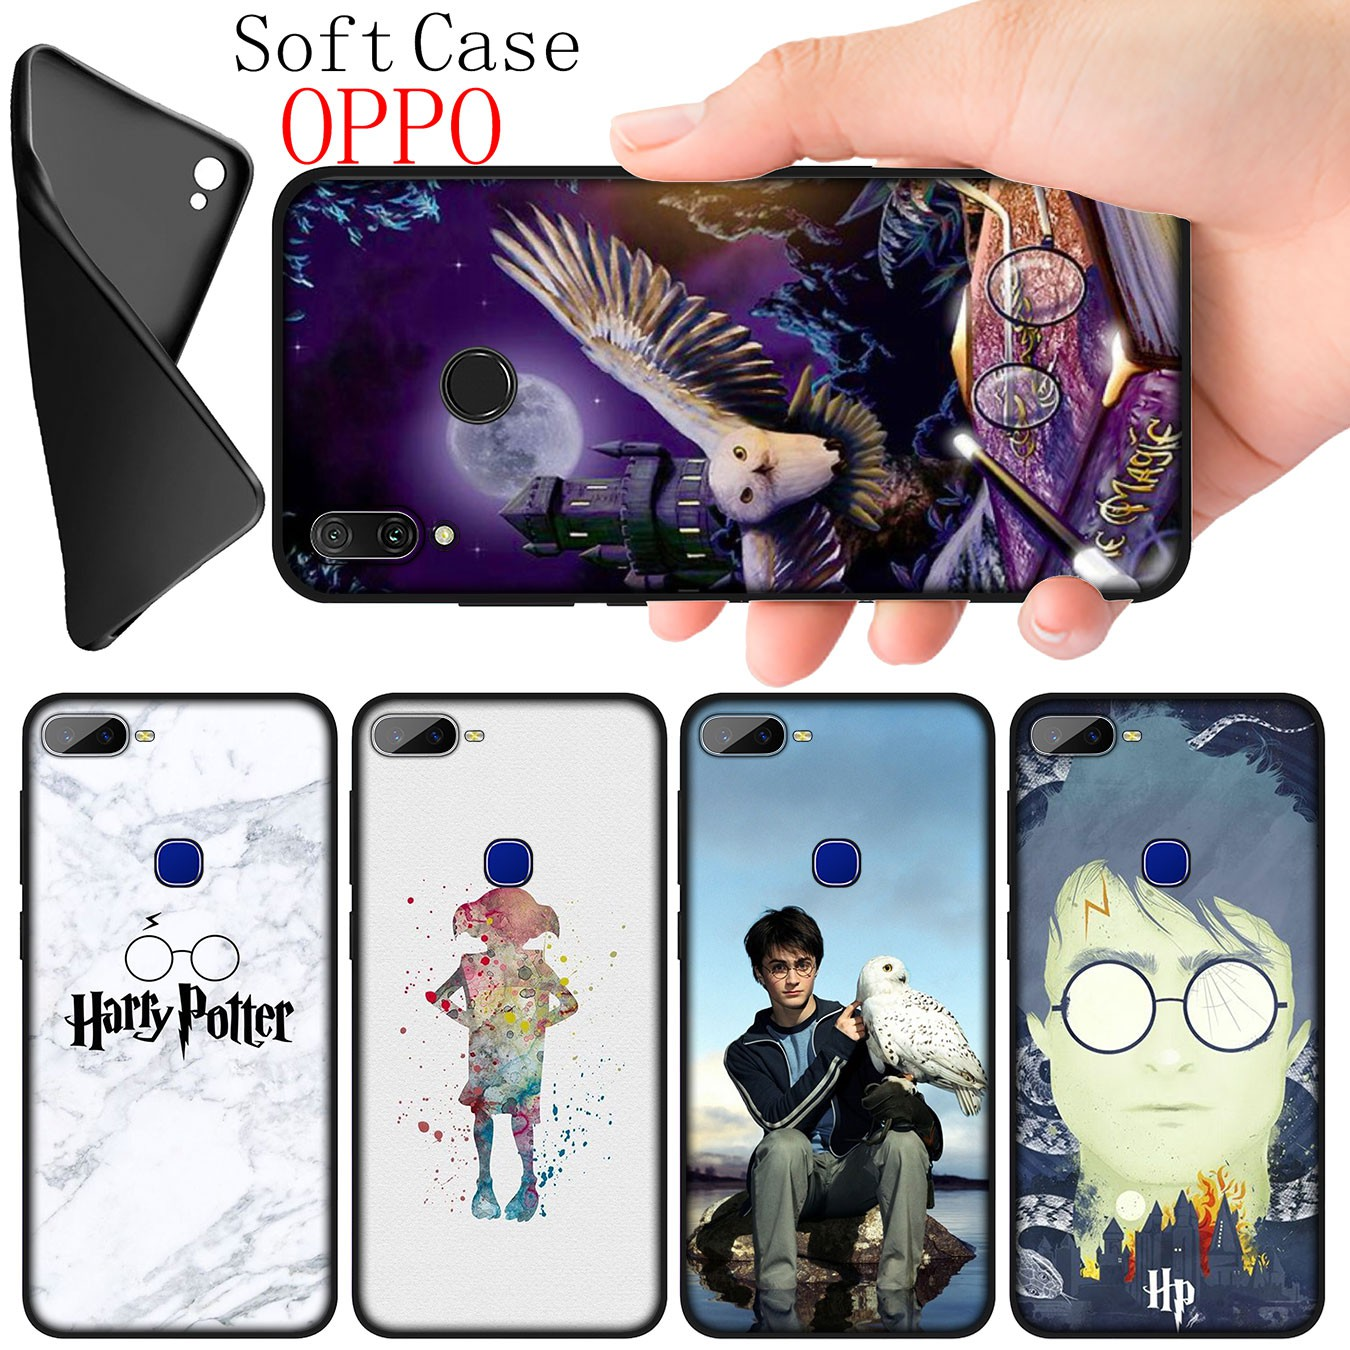 Xiaomi Mi 10 9 9T Pro Lite SE pocophone f1 MI10 Mi9 Soft Silicone Phone Cover Case Harry Potter cool